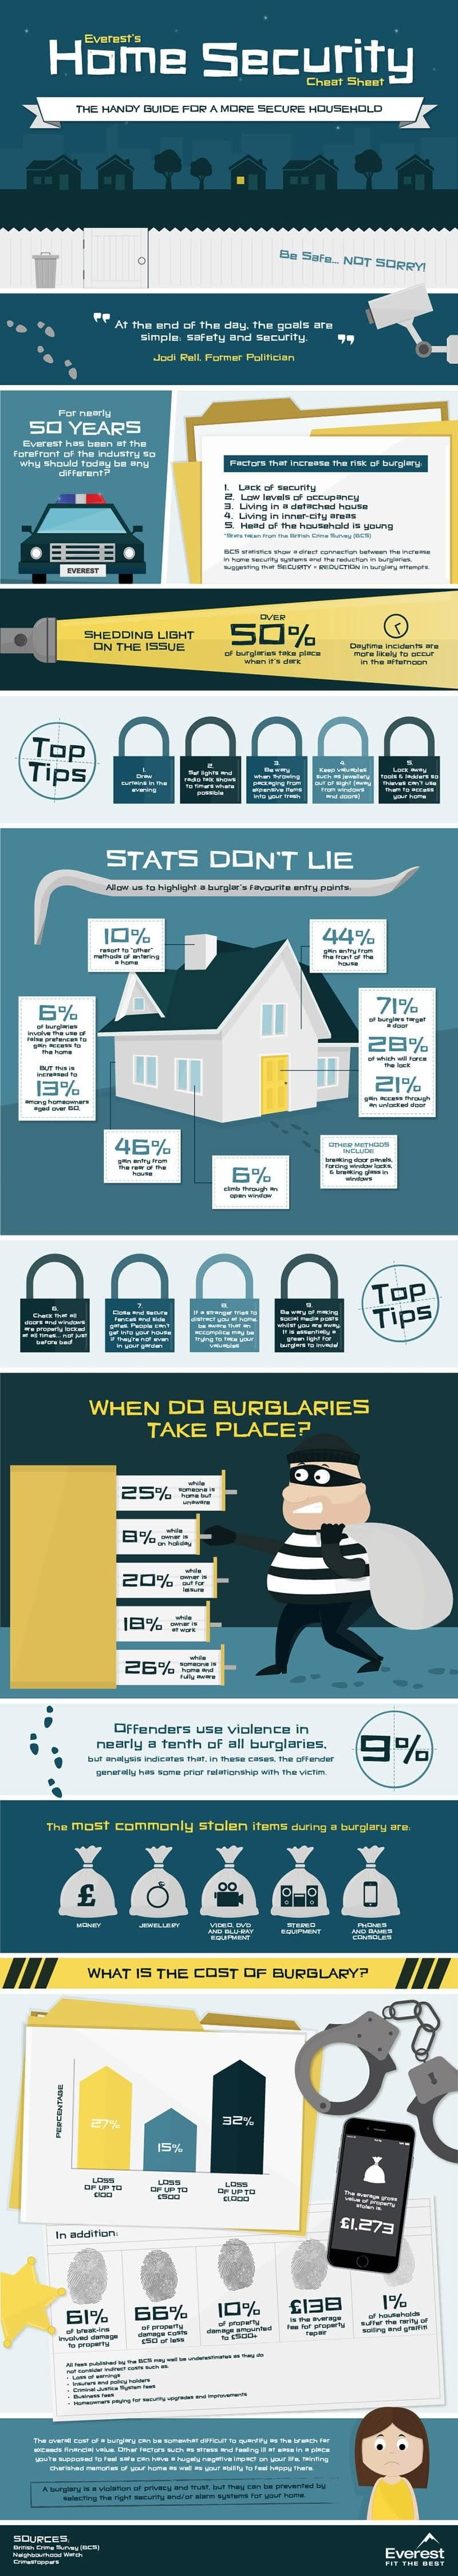 Home Security Cheat Sheet #infographic